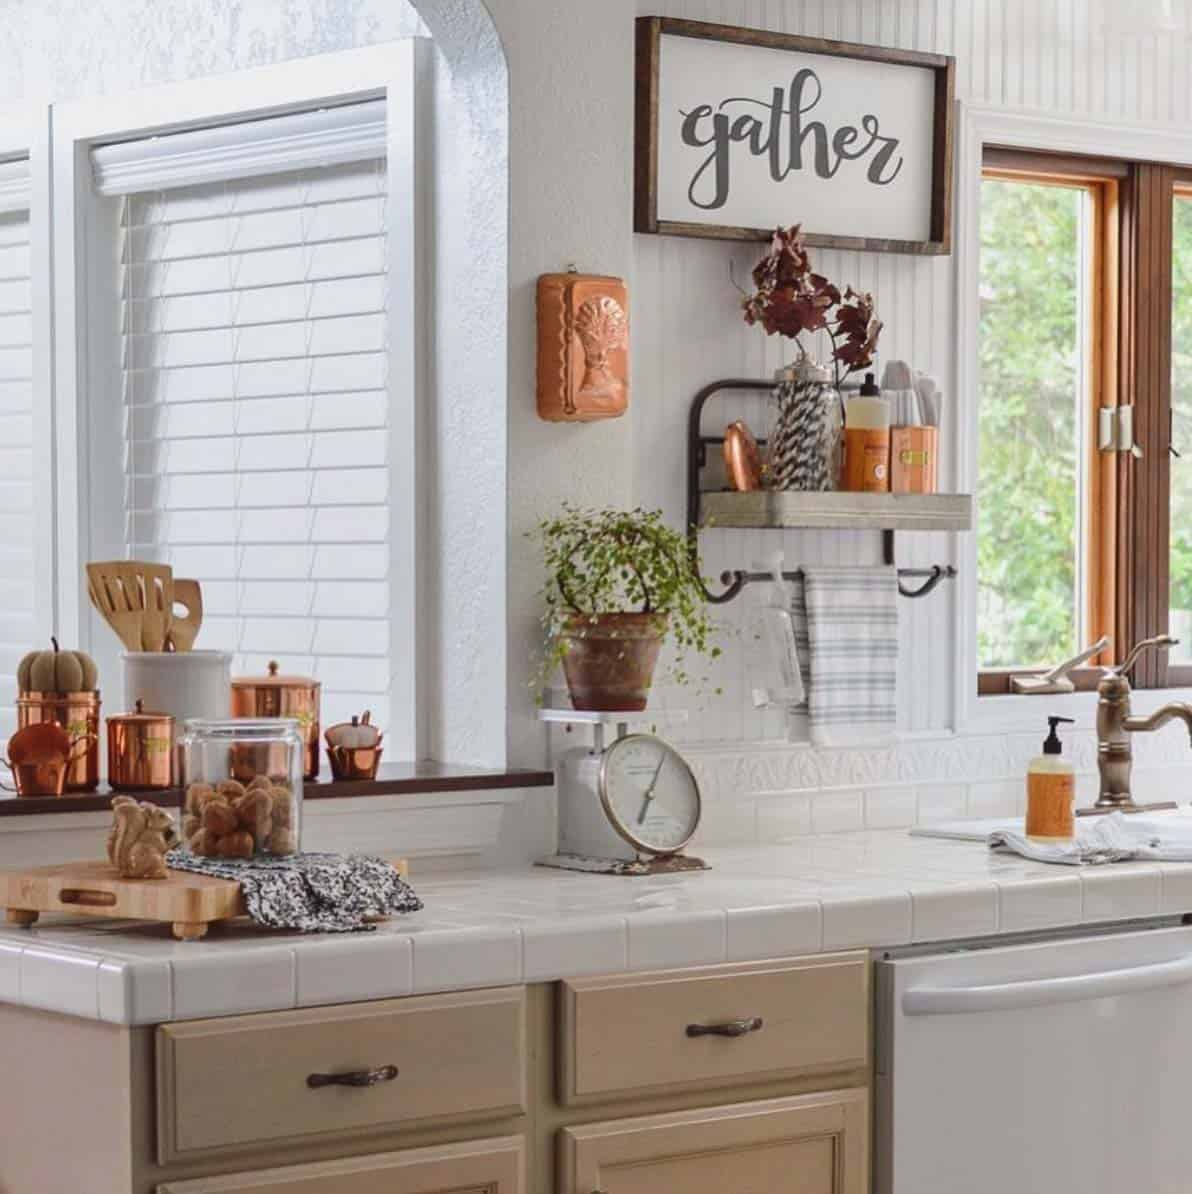 Inviting-Fall-Kitchen-Decorating-Ideas-17-1-Kindesign